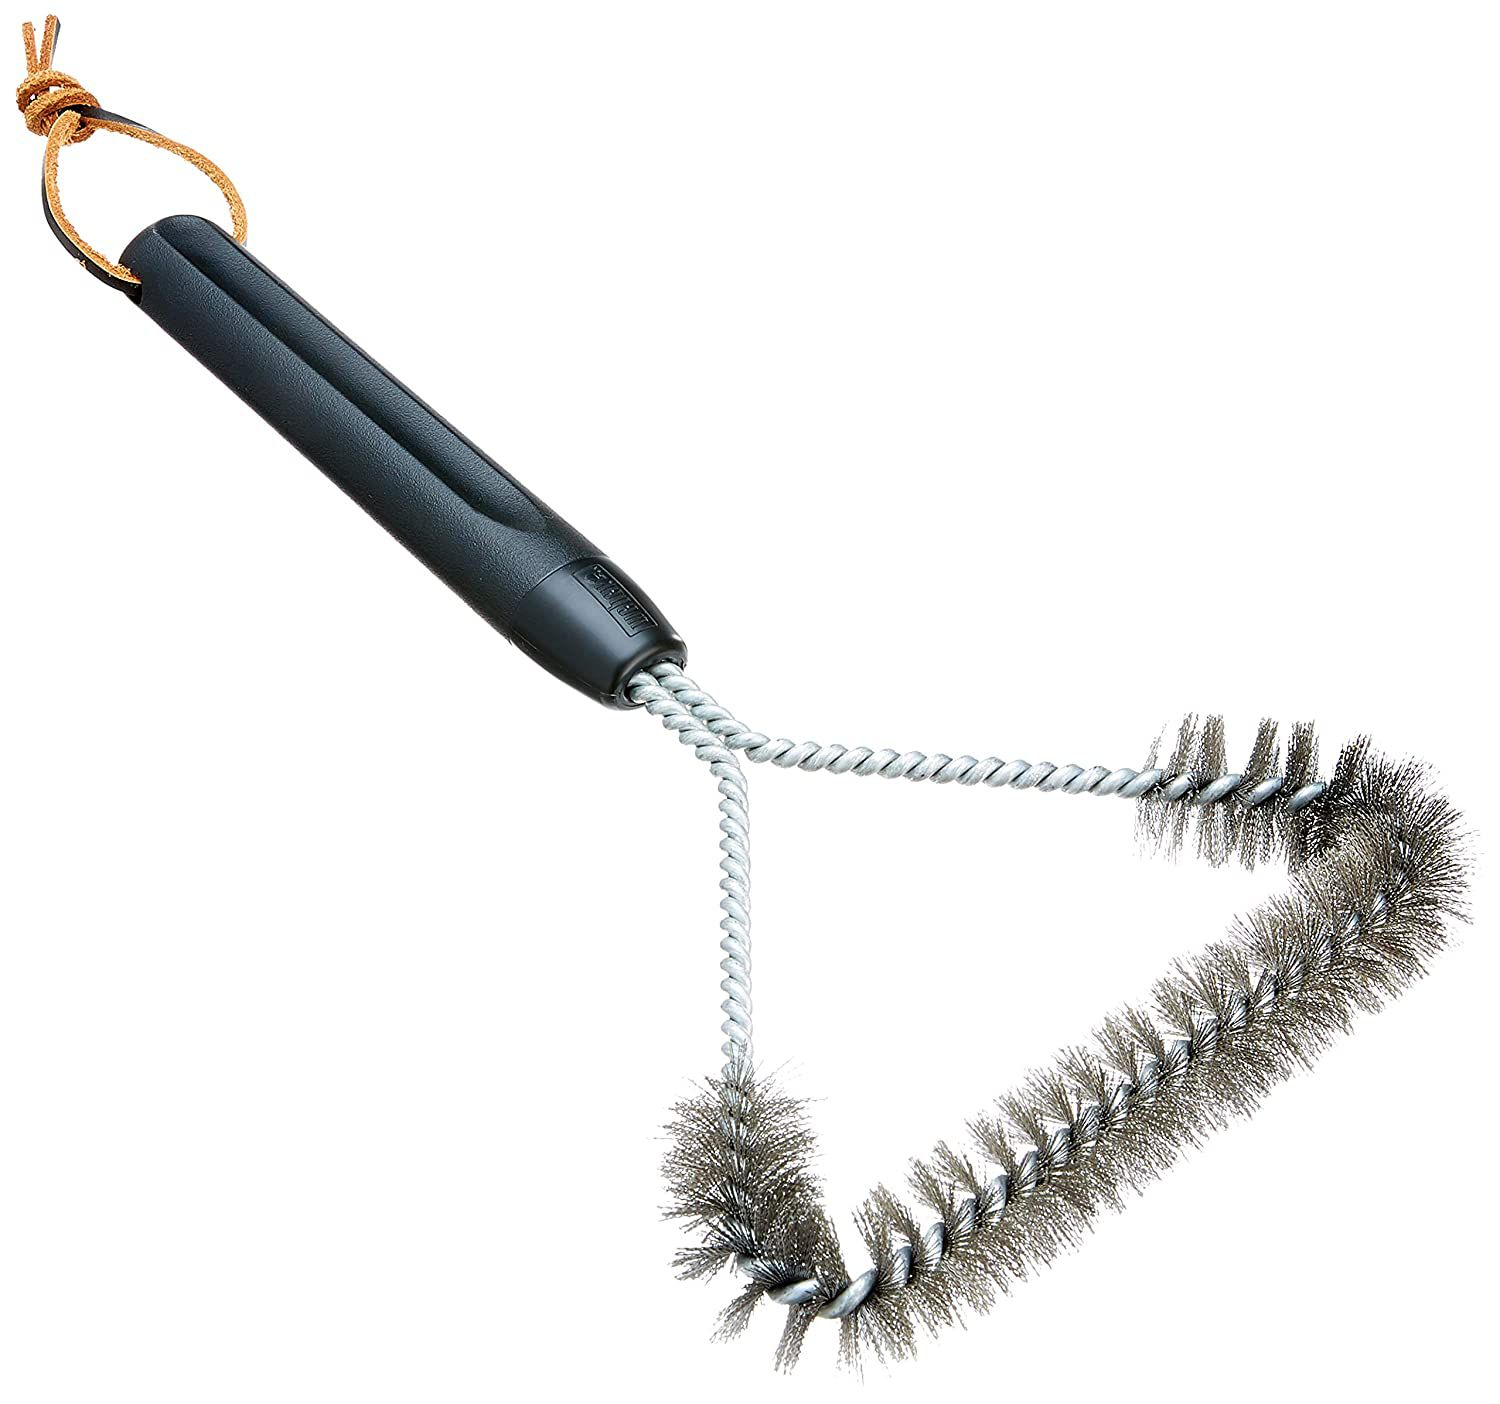 Weber 12-Inch 3-Sided Grill Brush